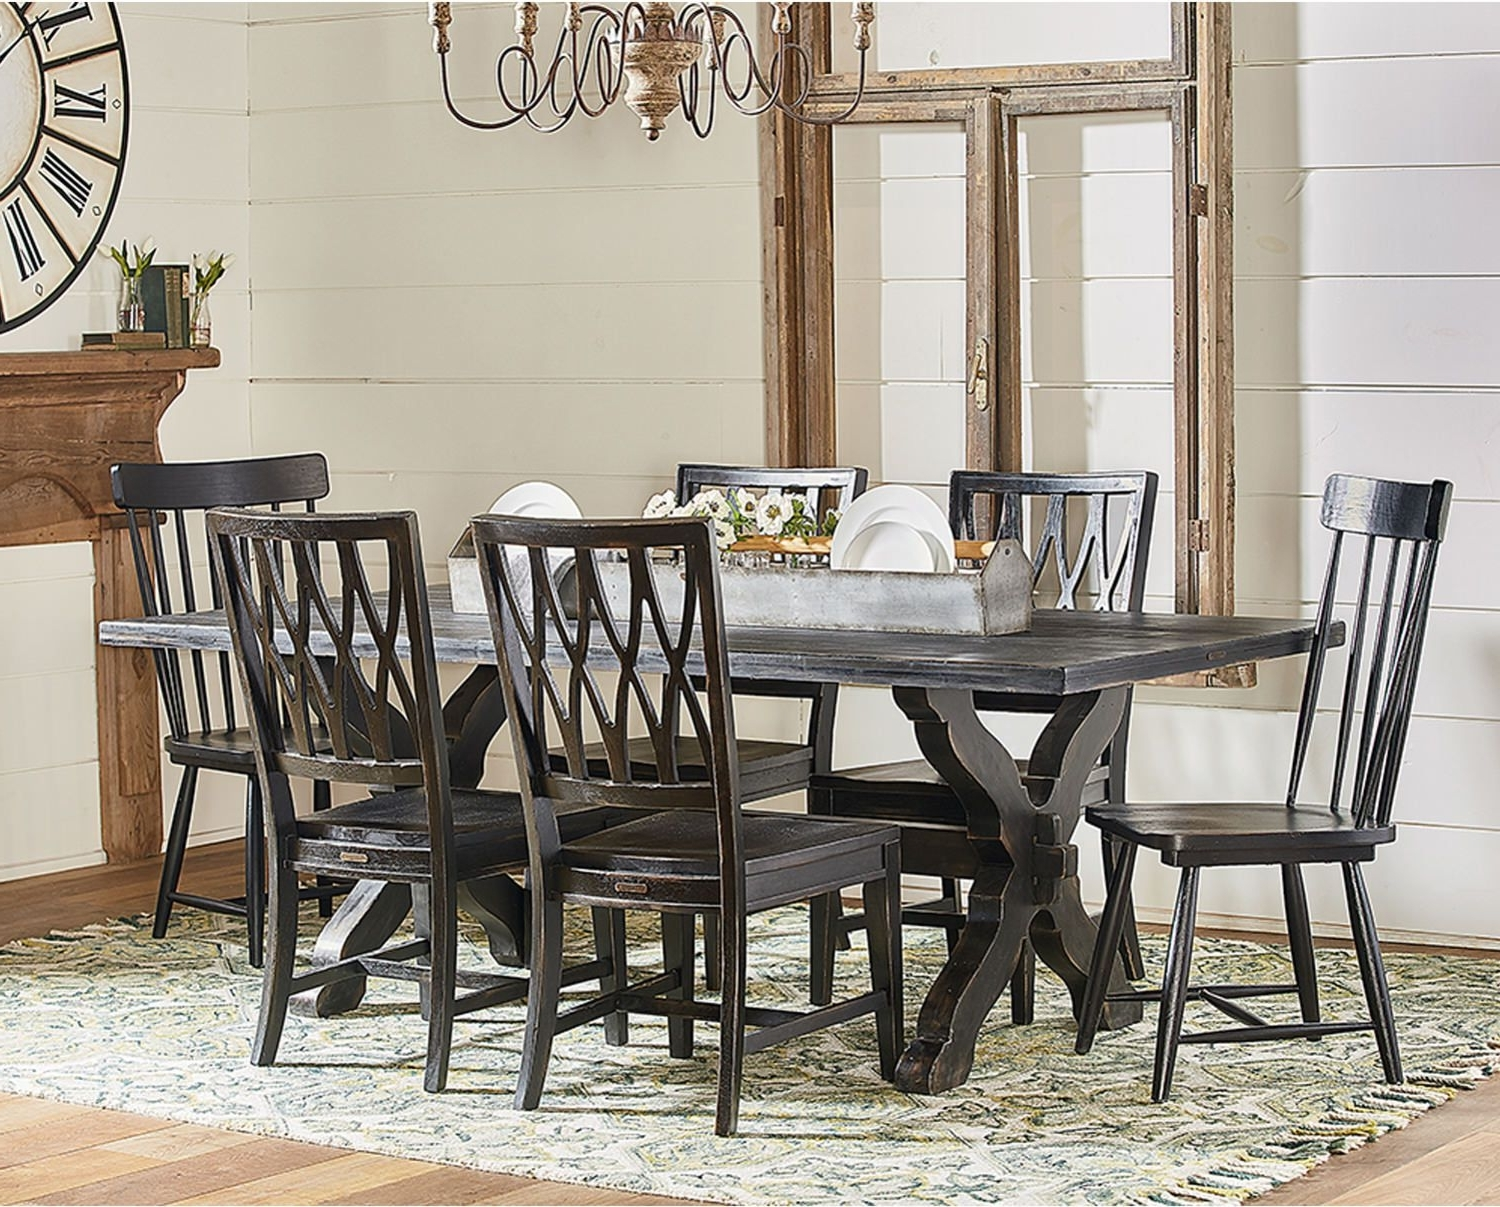 Widely Used Sawbuck Table With 2 Spindle Host Chairs And 4 Camden Side Chairs Inside Magnolia Home Spindle Back Side Chairs (View 15 of 20)